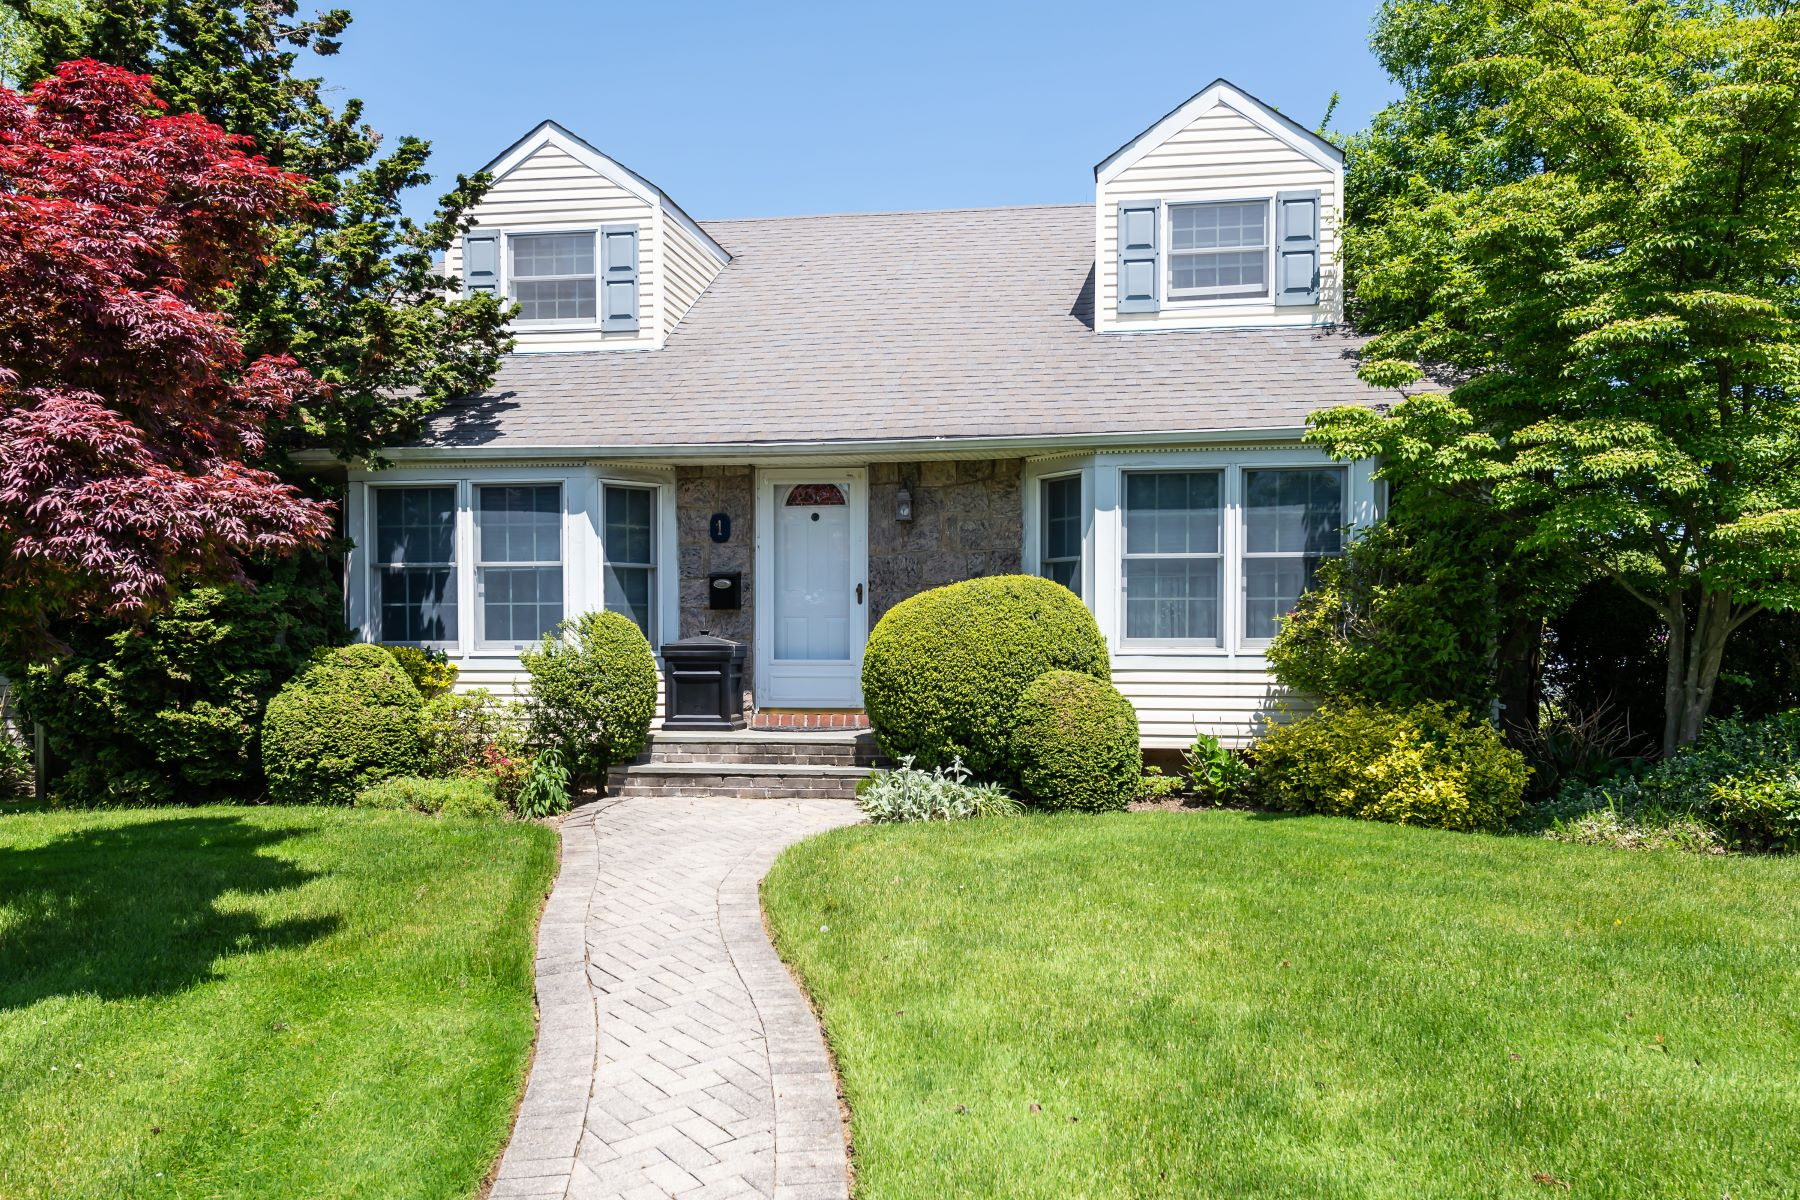 Single Family Homes for Sale at Carle Place 1 Southview Ct Carle Place, New York 11514 United States